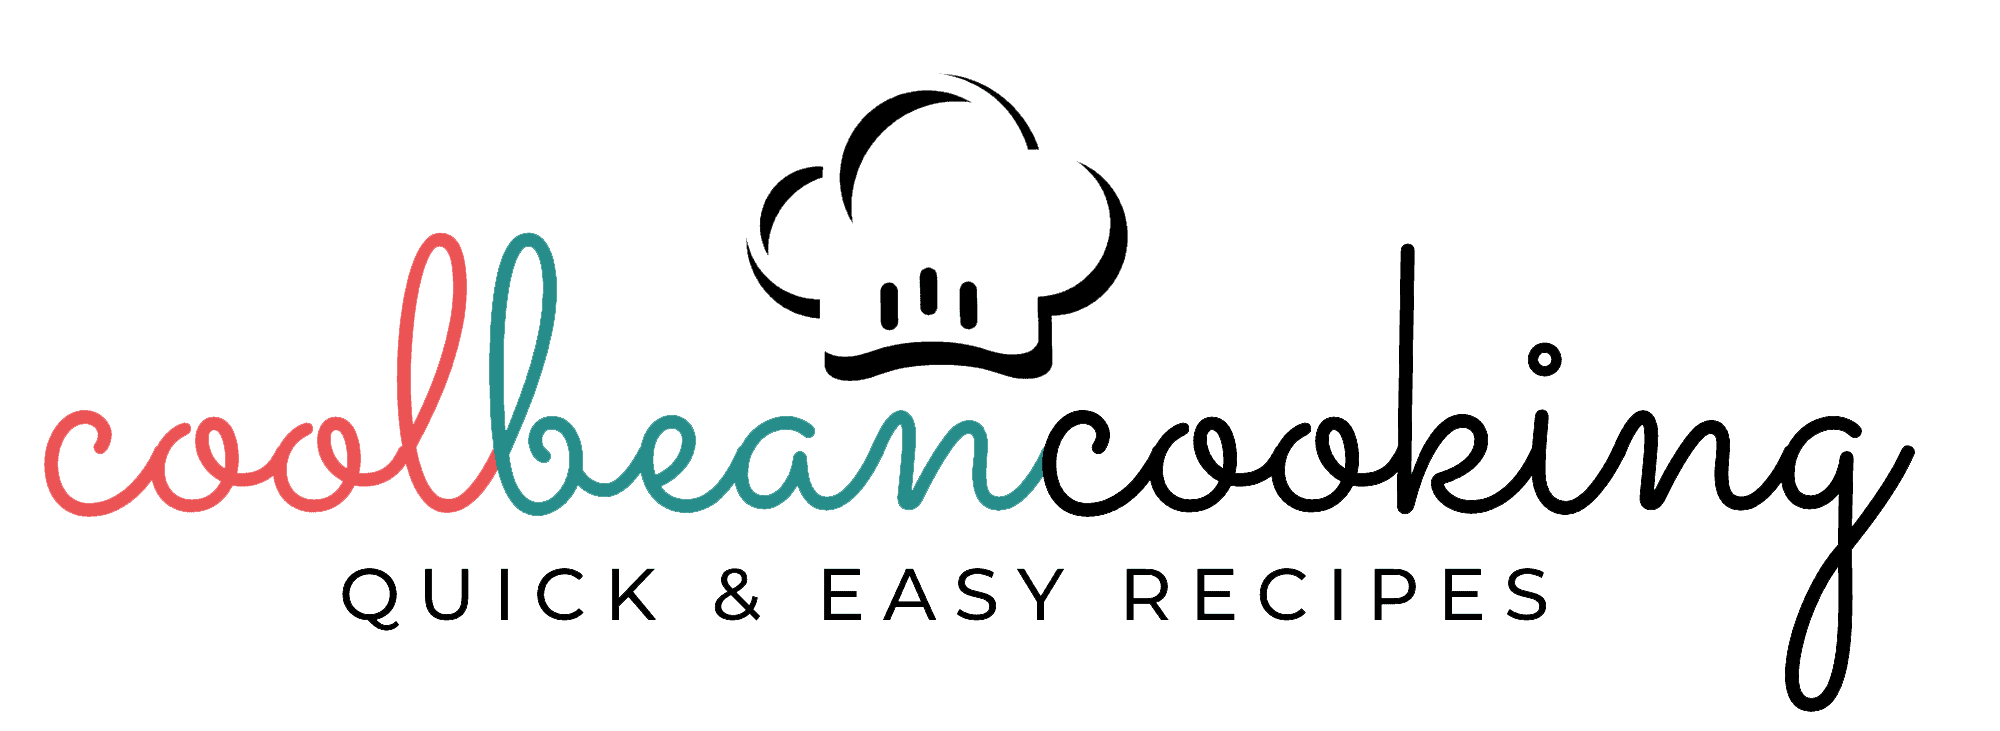 Cool Bean Cooking, Quick & Easy Recipes